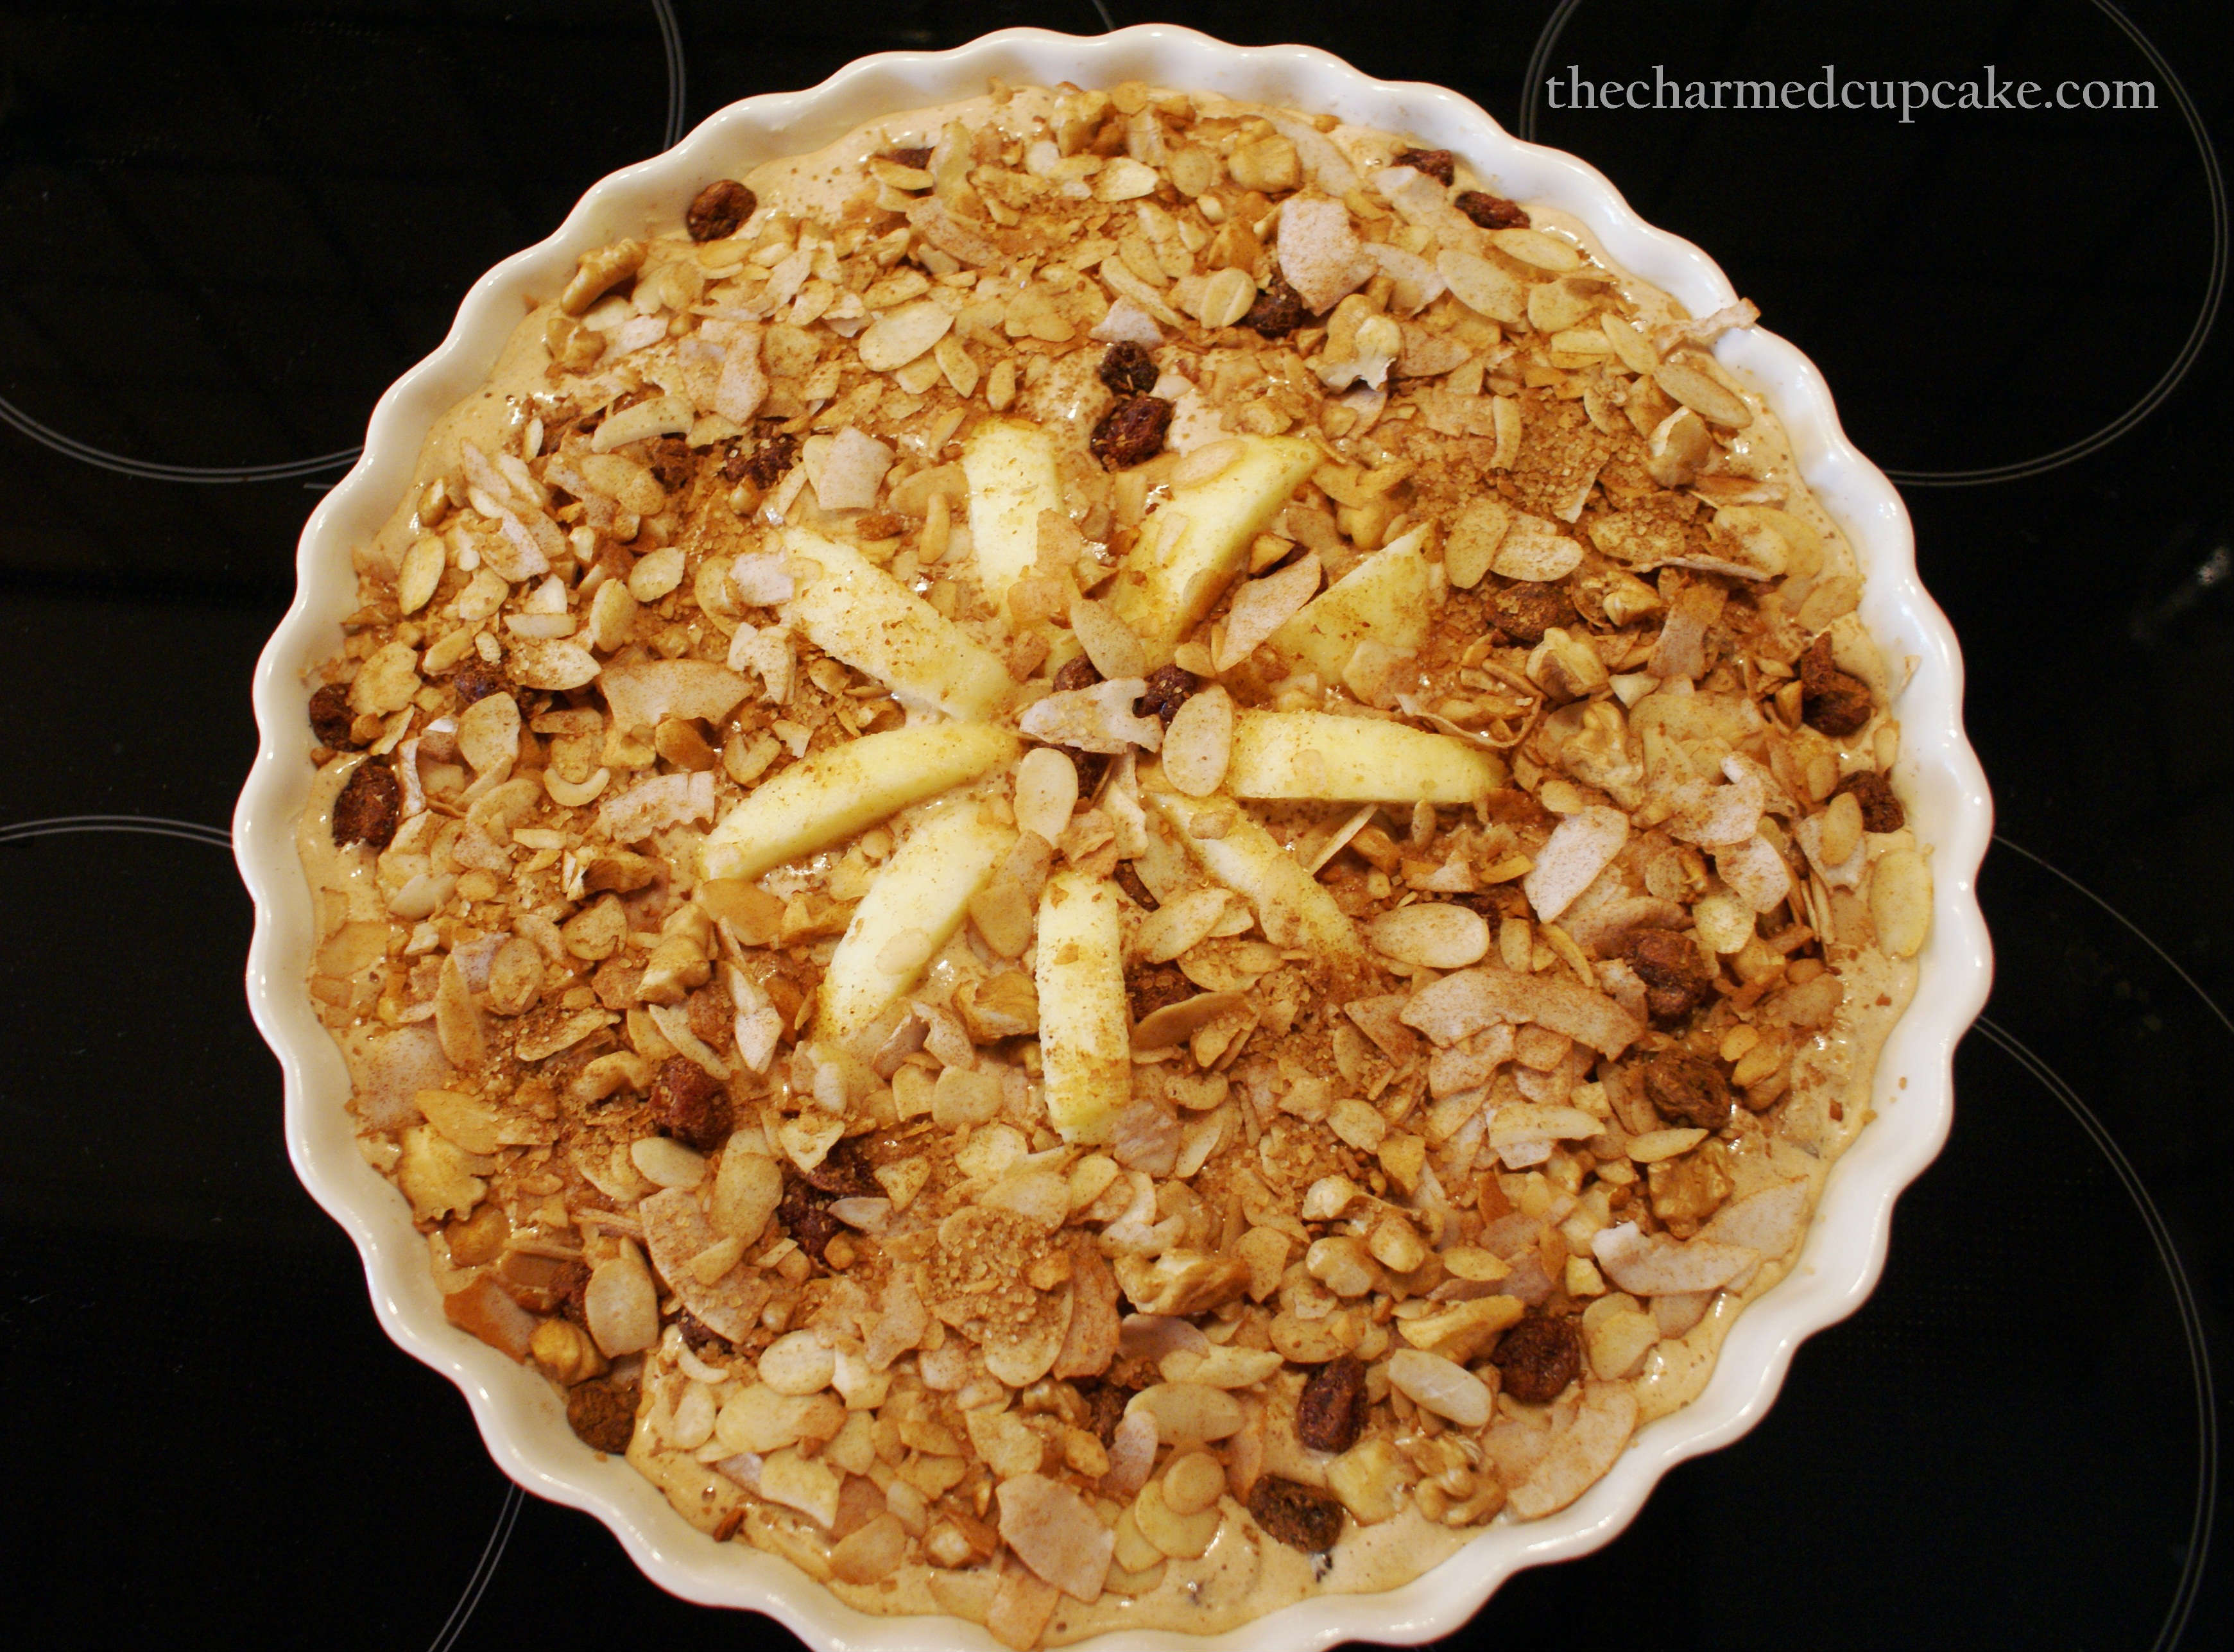 Cinnamon-Apple Walnut Torte | The Charmed Cupcake